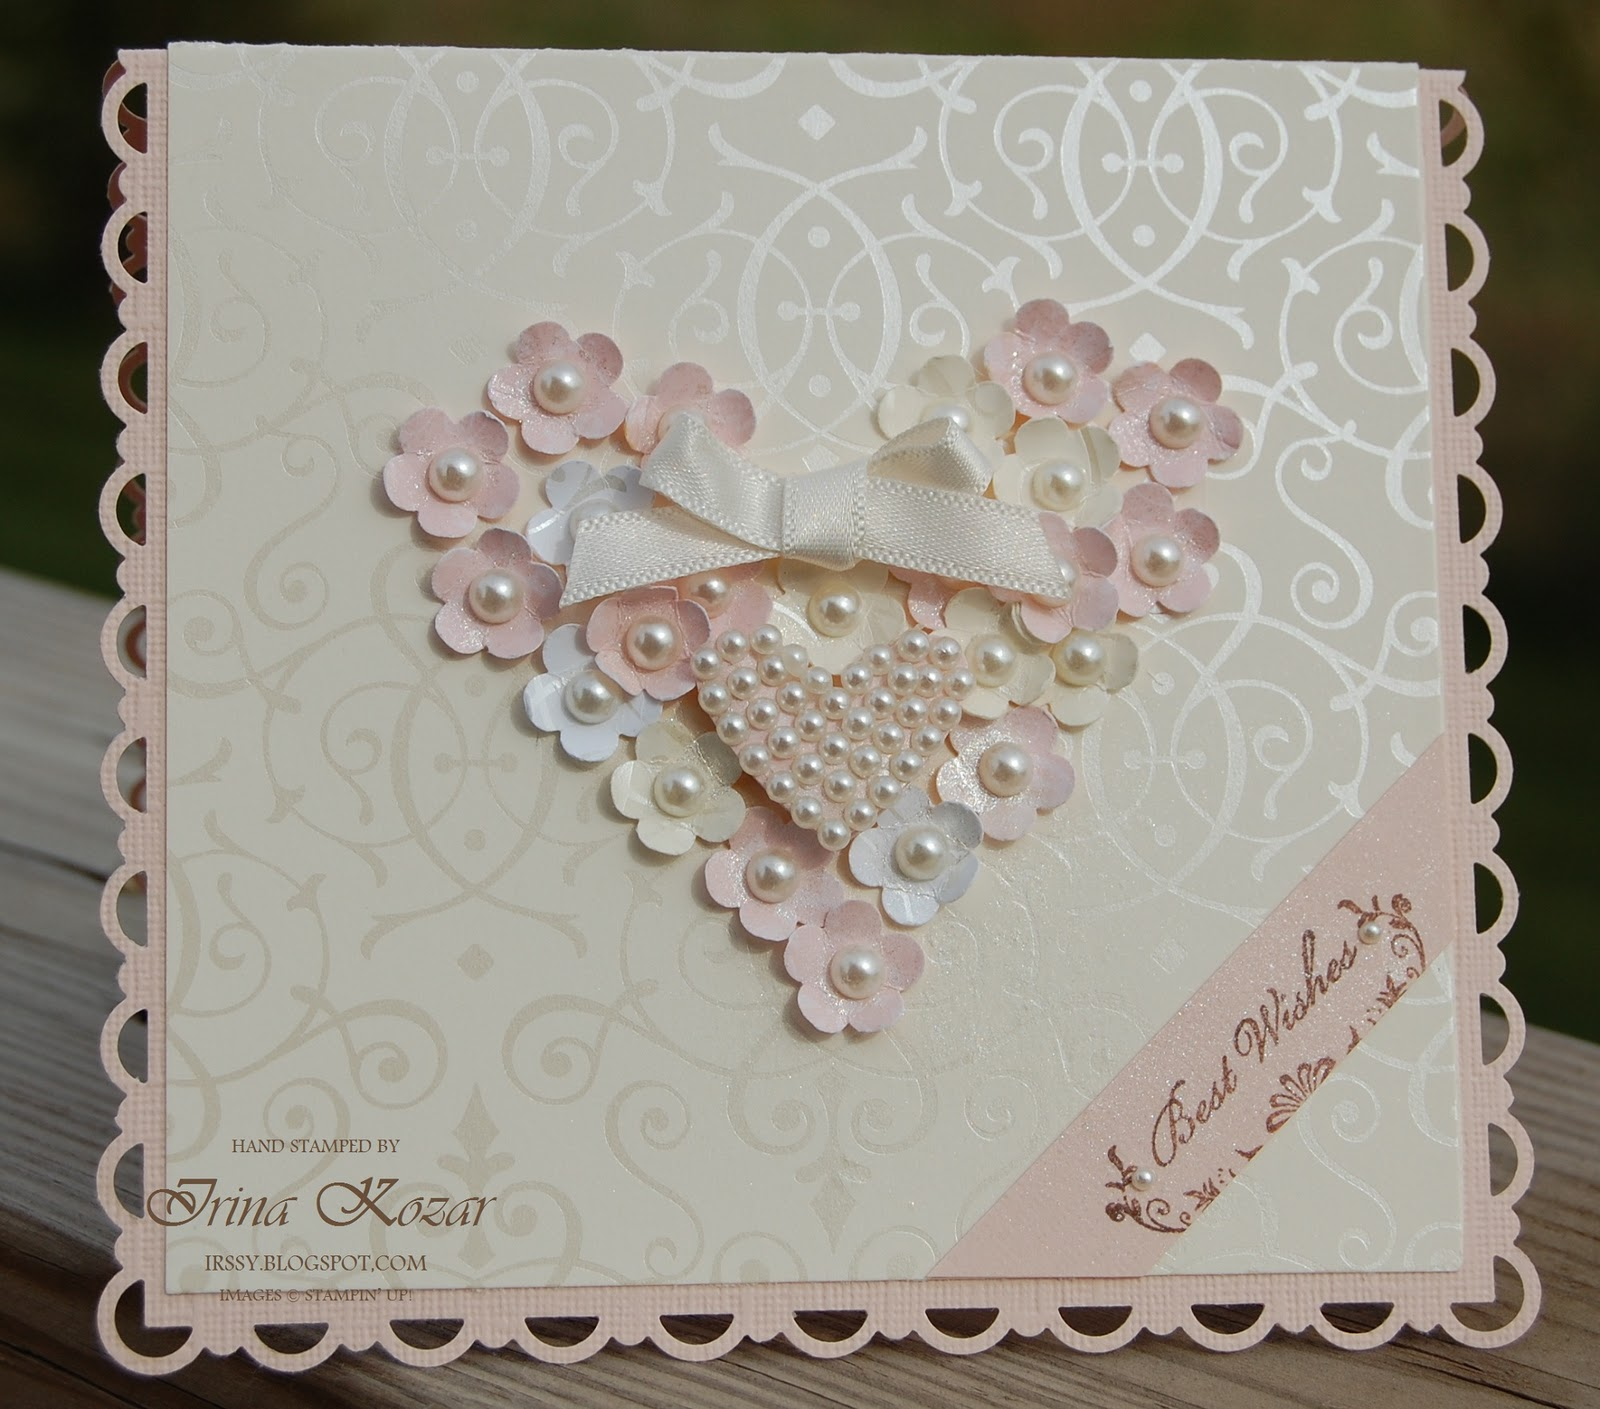 How to scrapbook wedding cards - Download This Flower Heart Wedding Card Picture